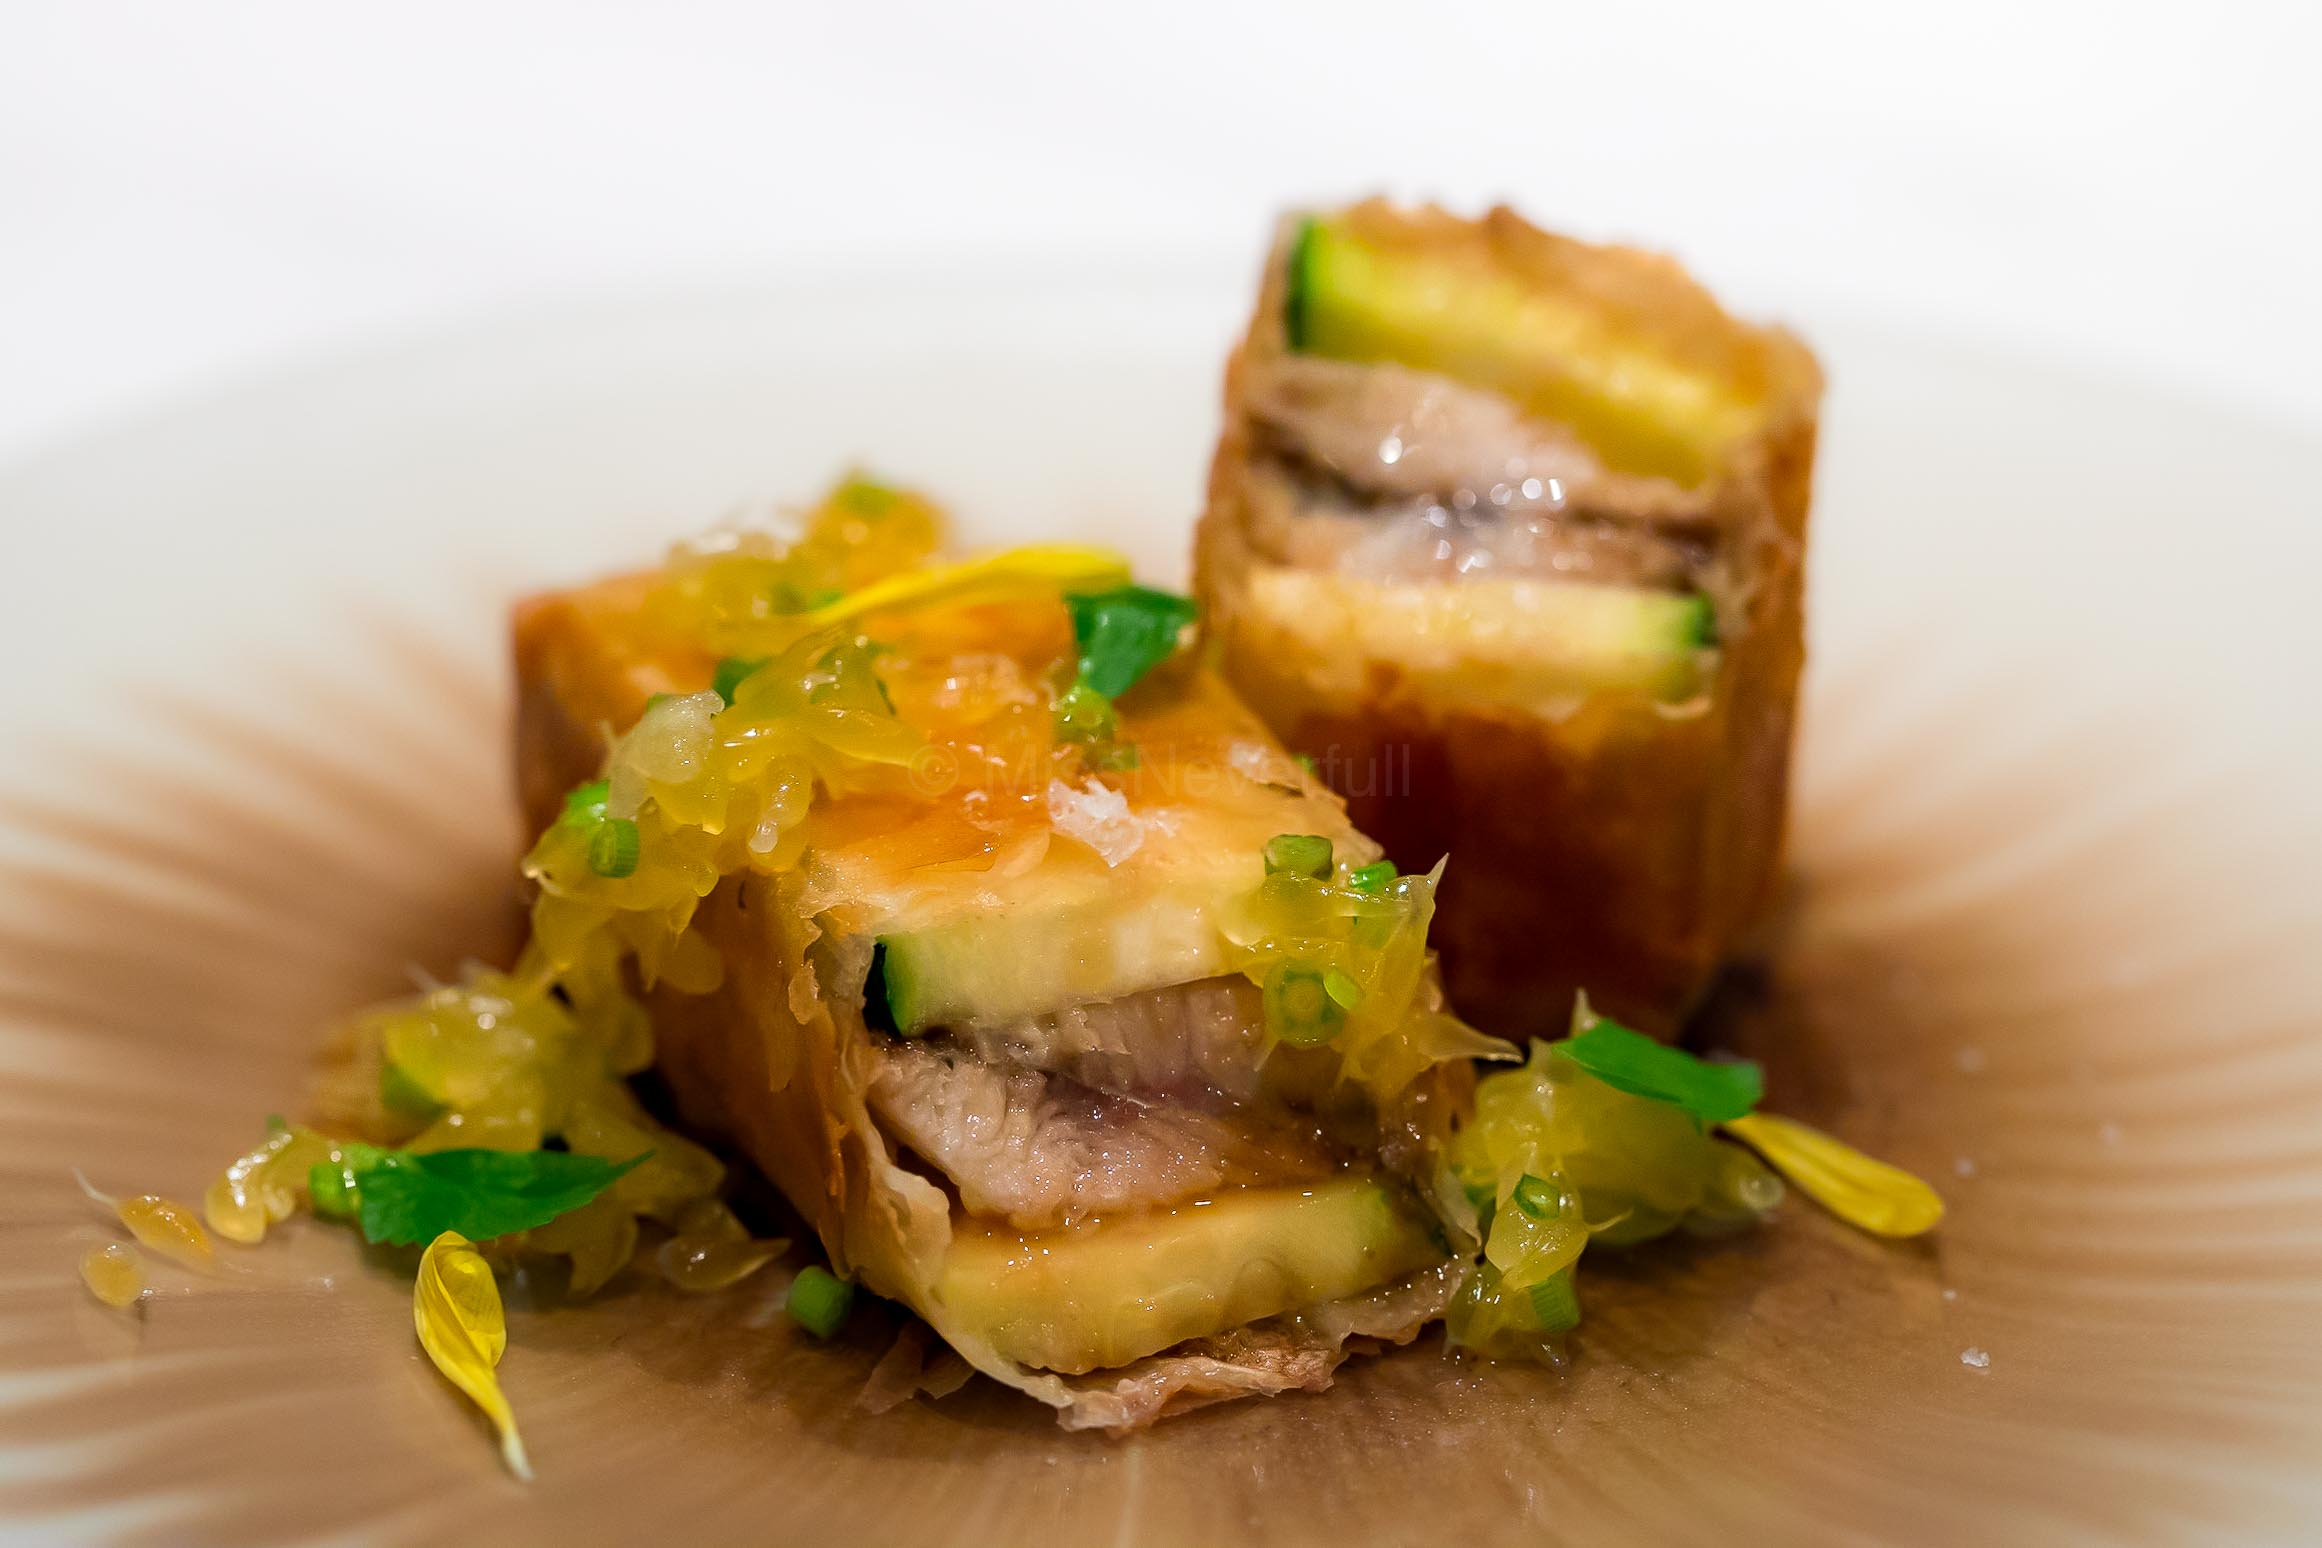 2. Ayu (sweetfish) and zucchini pate filo, Ayu liver sauce and Amanatsu citrus / 鮎とズッキーニのパートファロー包み 鮎肝のソース